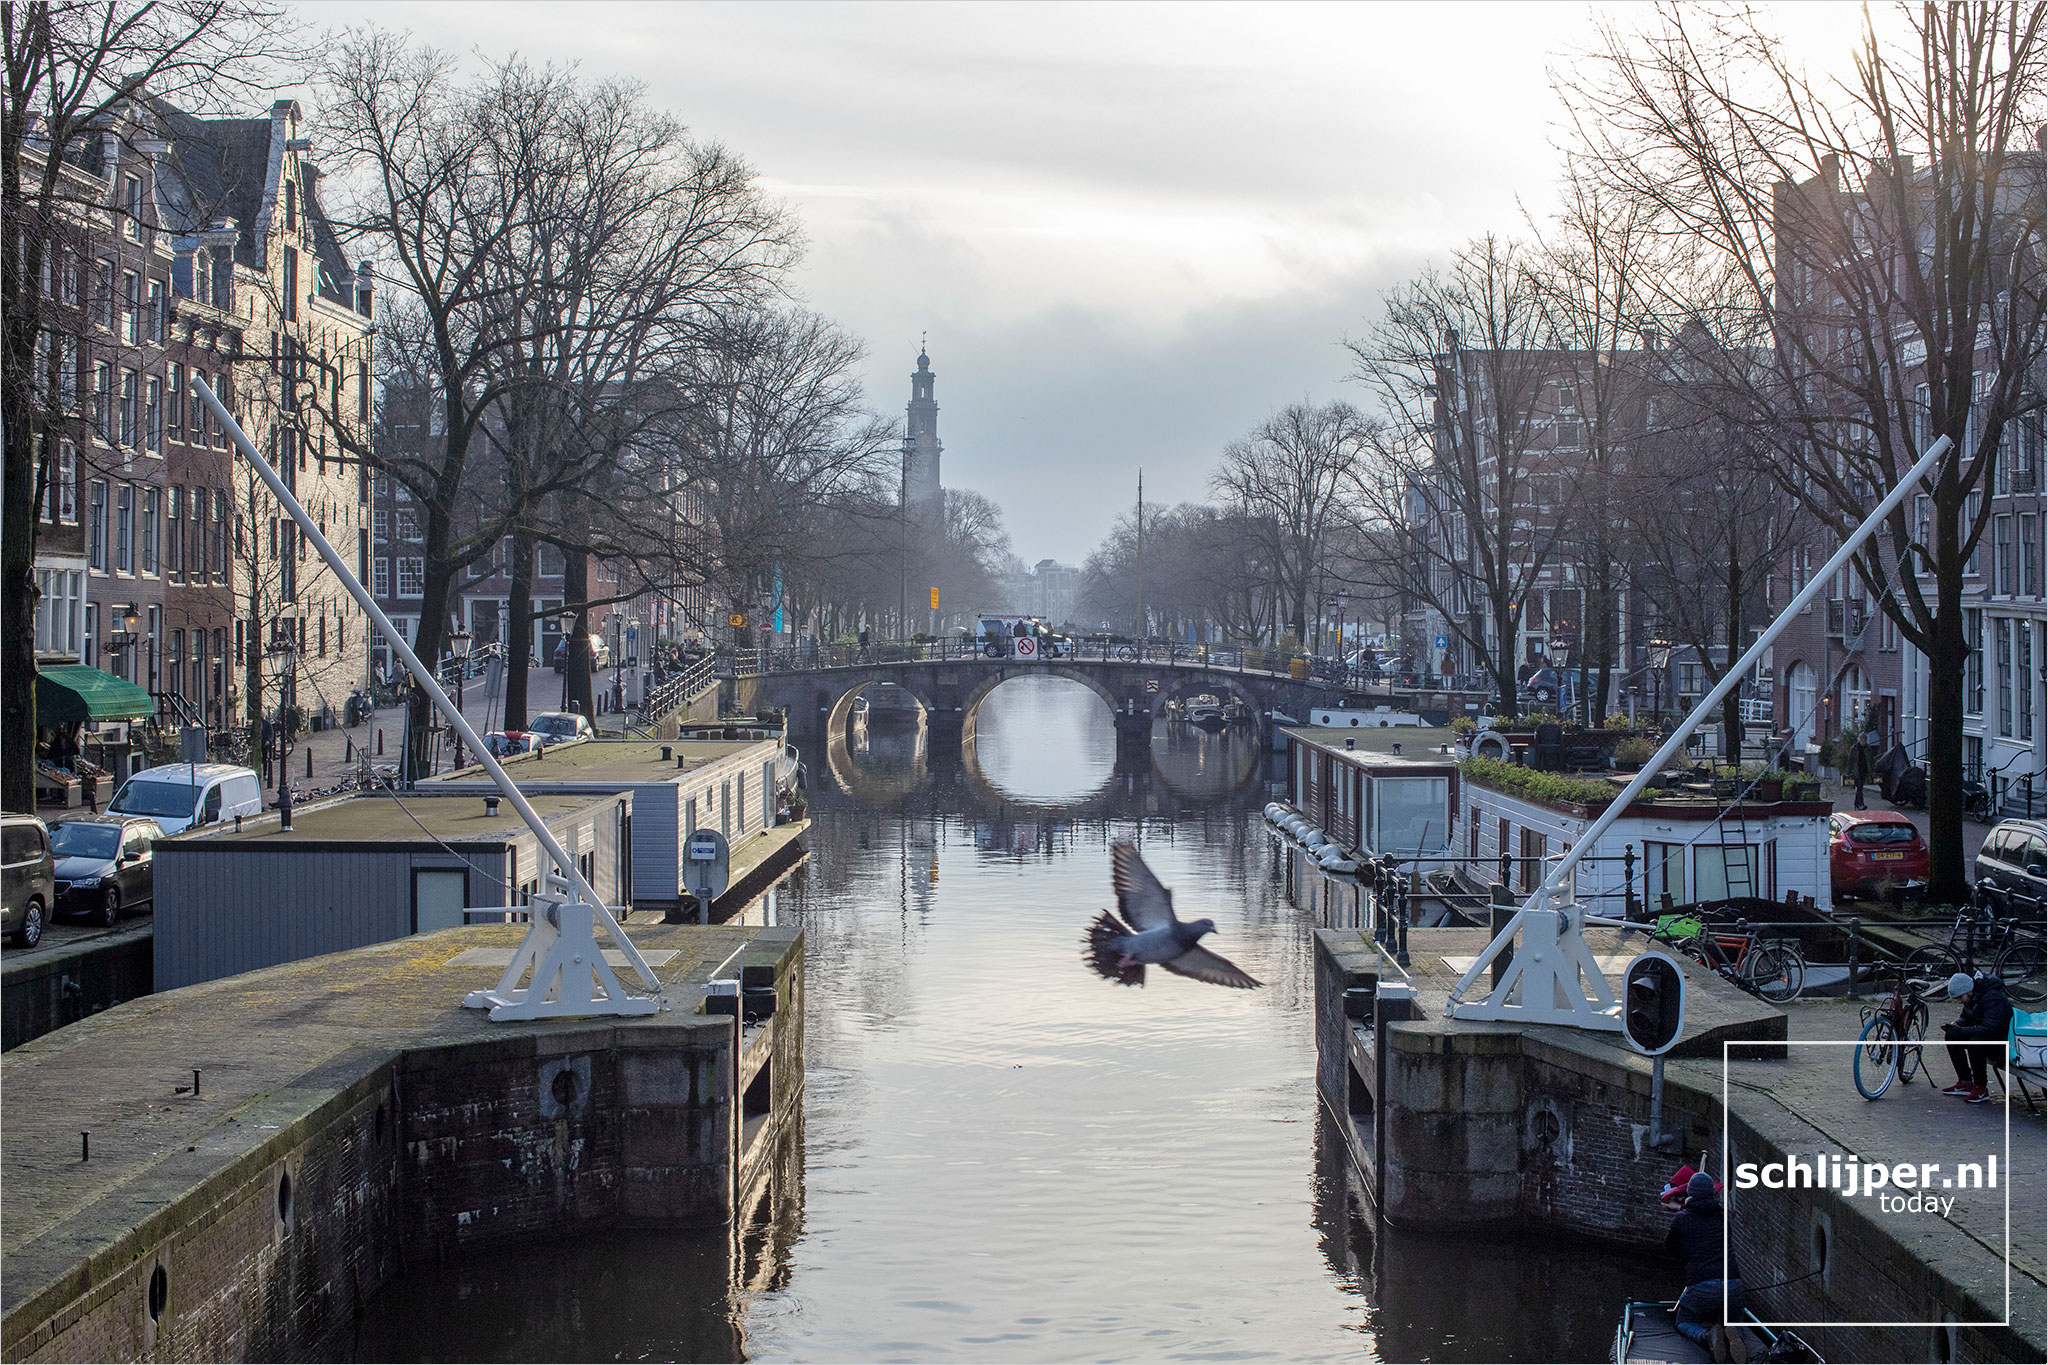 The Netherlands, Amsterdam, 4 februari 2021